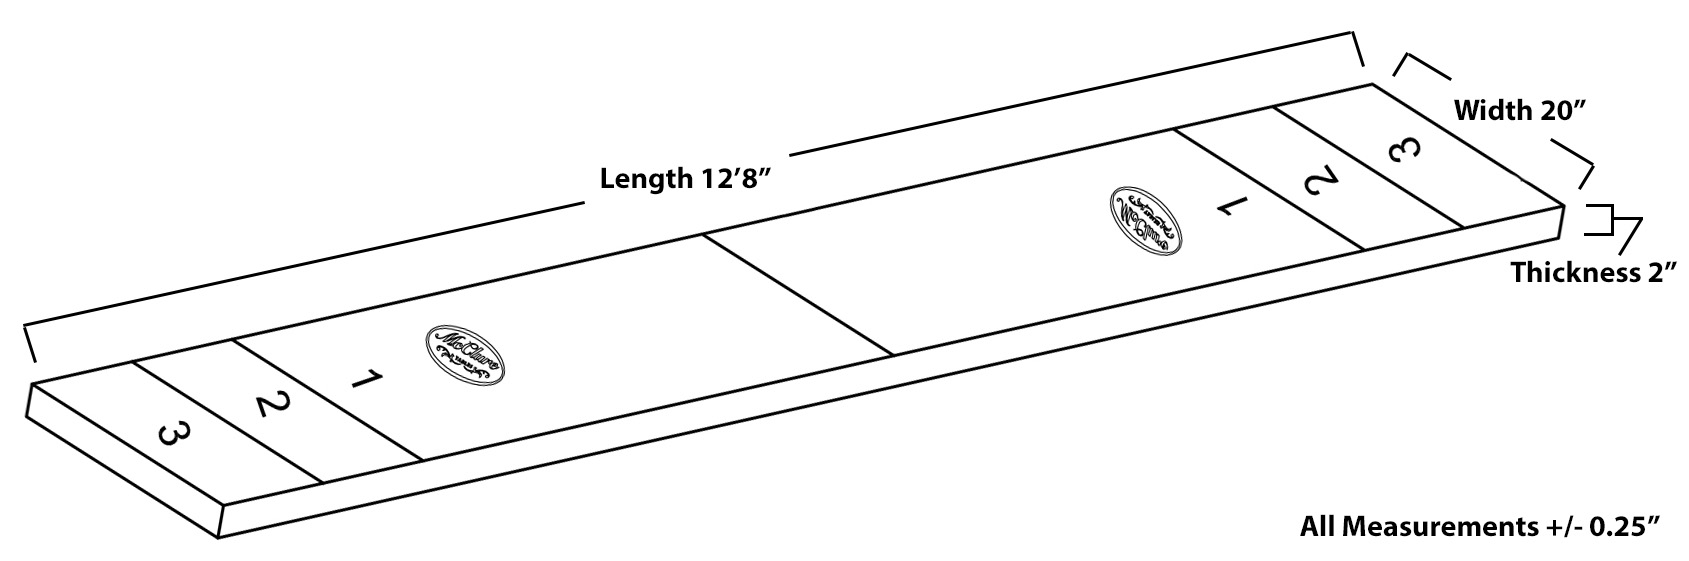 Shuffleboard table dimensions